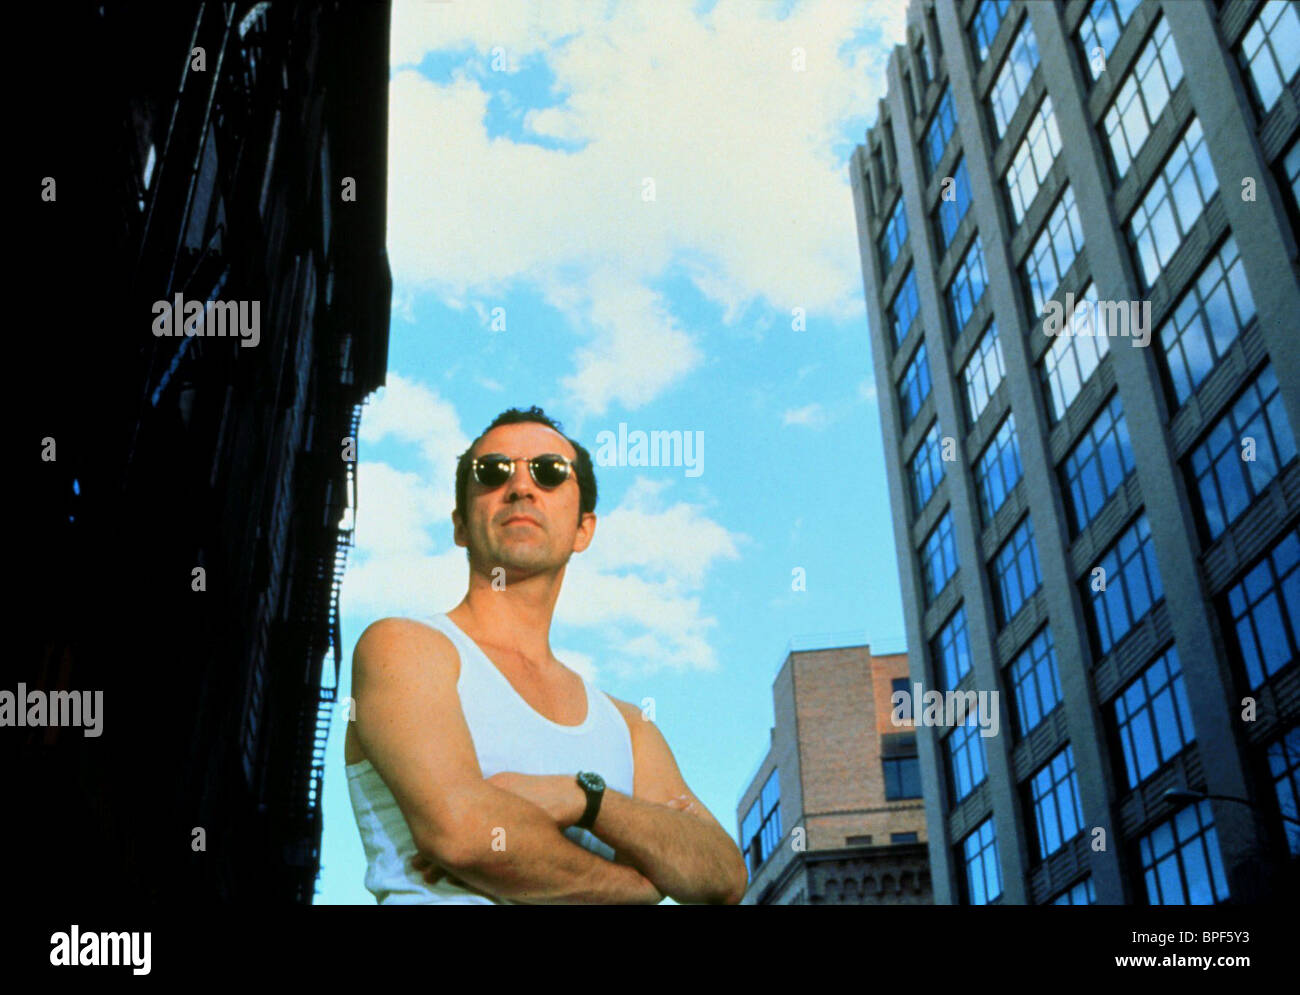 IAIN SOFTLEY HACKERS (1995) - Stock Image